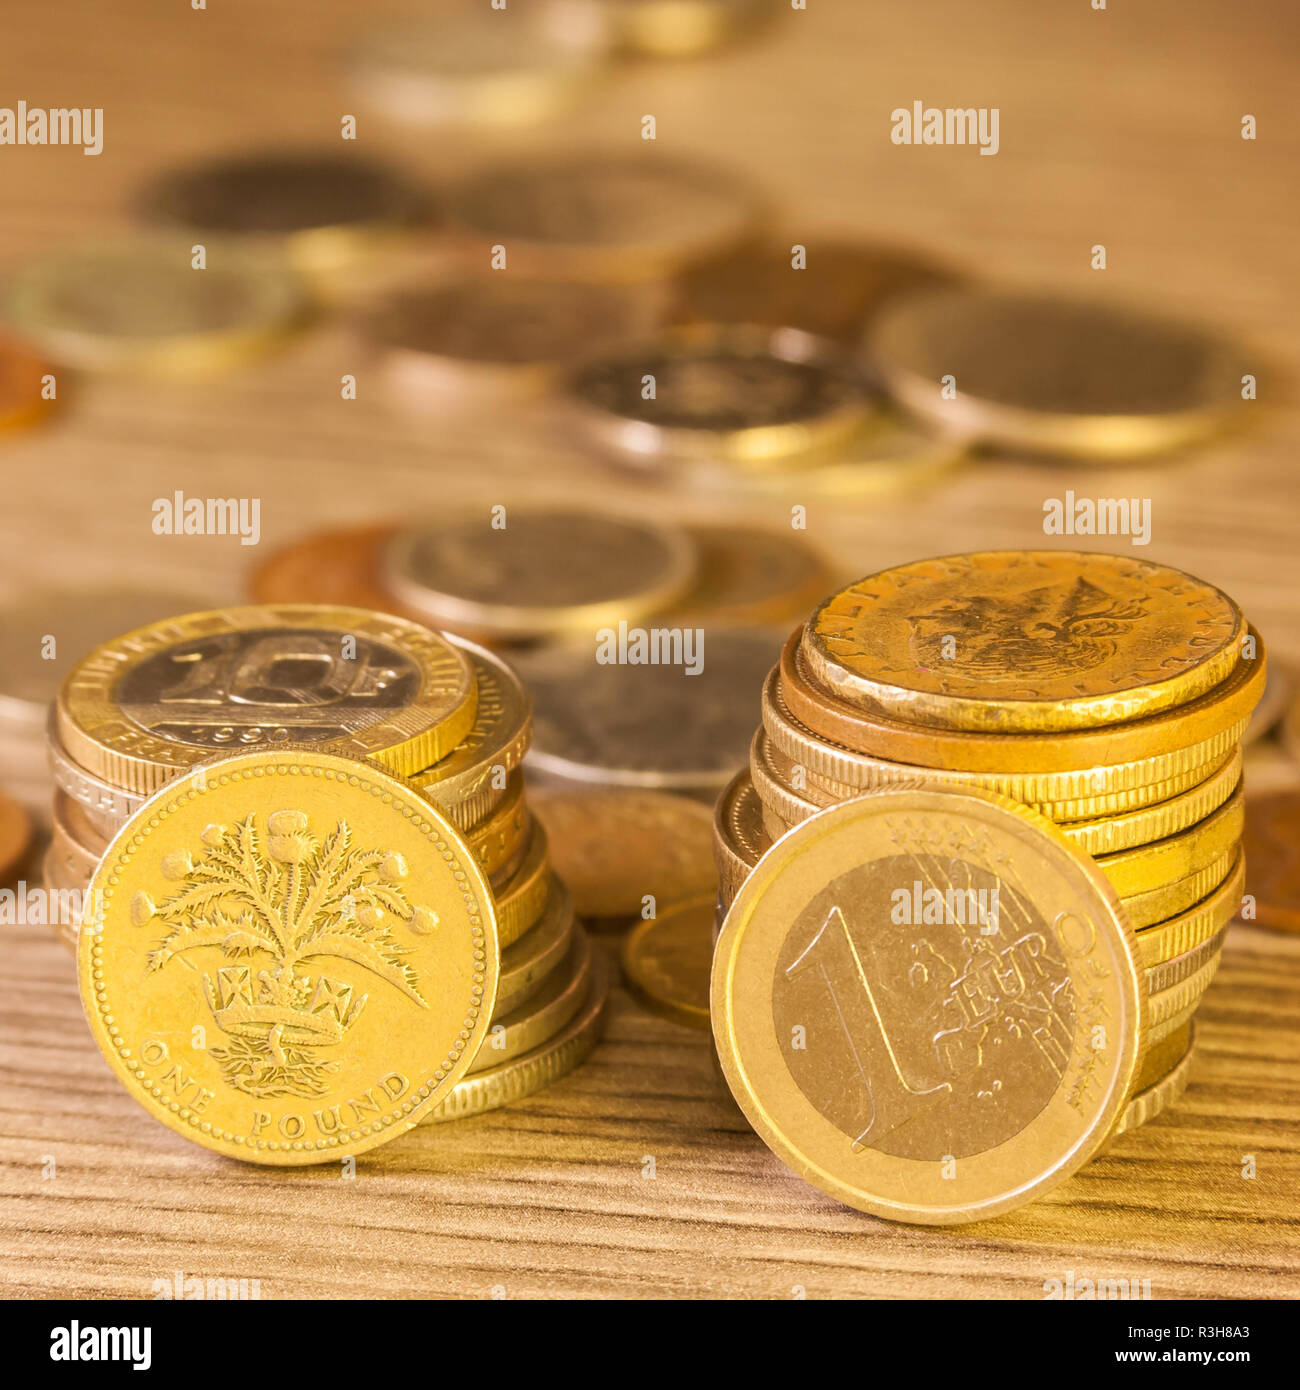 Old Pound Coins Stacked Stockfotos Old Pound Coins Stacked Bilder